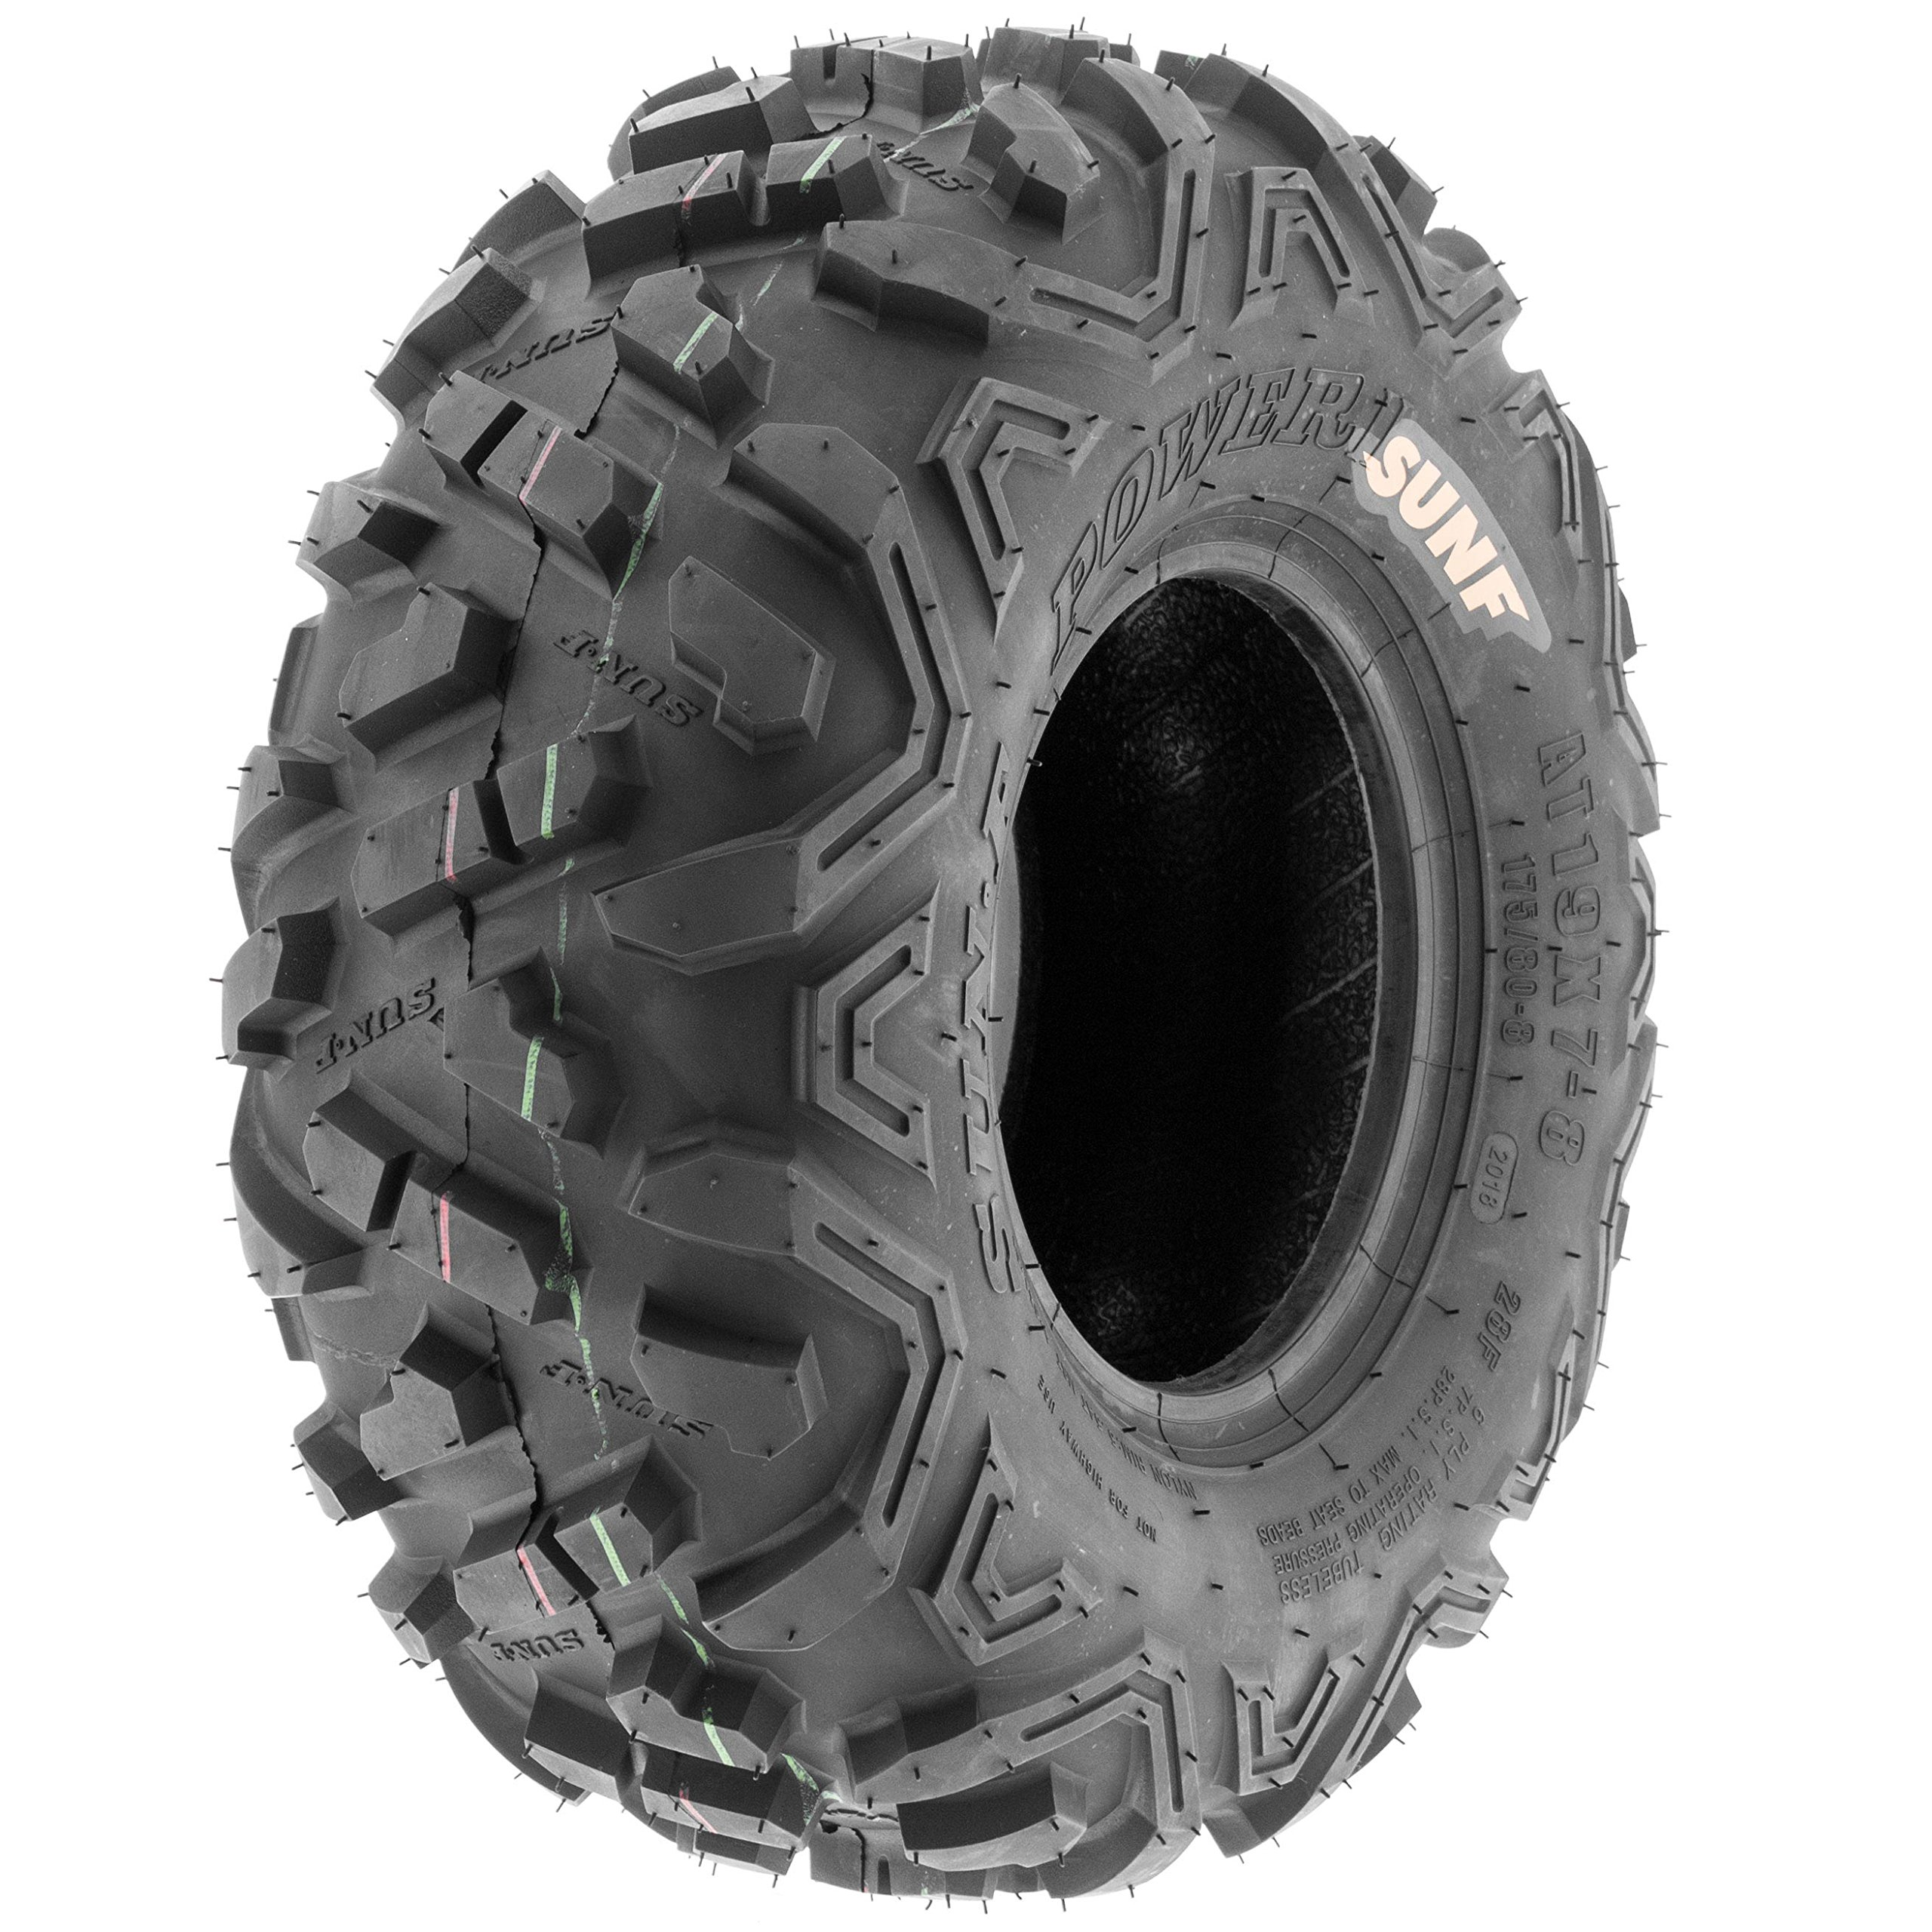 SunF ATV UTV 145/70-6 All Terrain 6 PR Tubeless Trail Tire A051 POWER II, [Single]